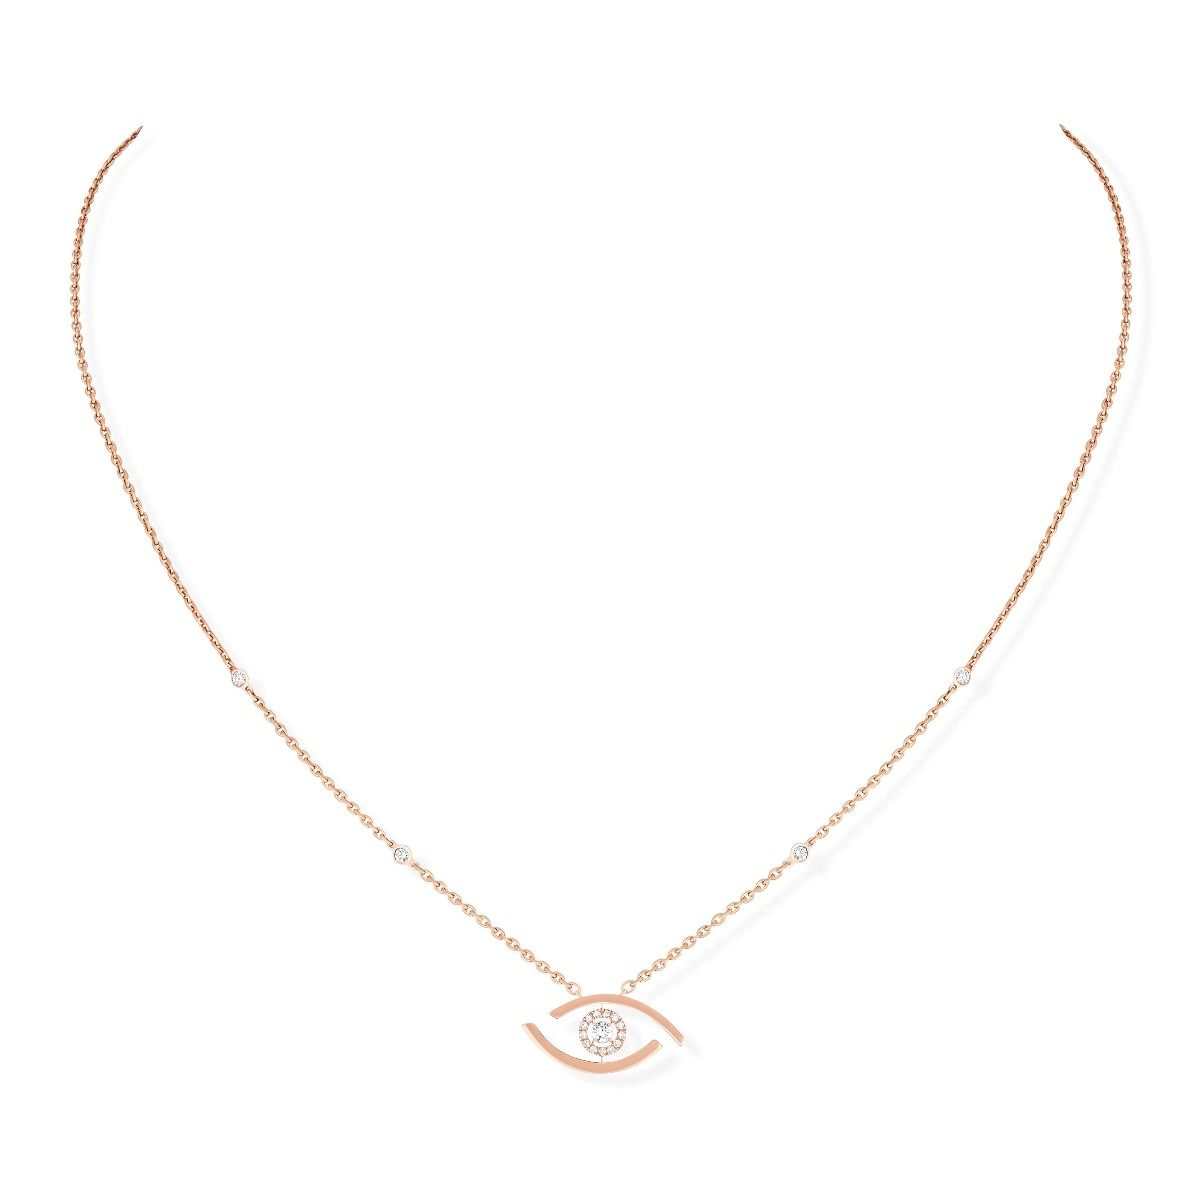 Lucky Eye Necklace - Pink Gold